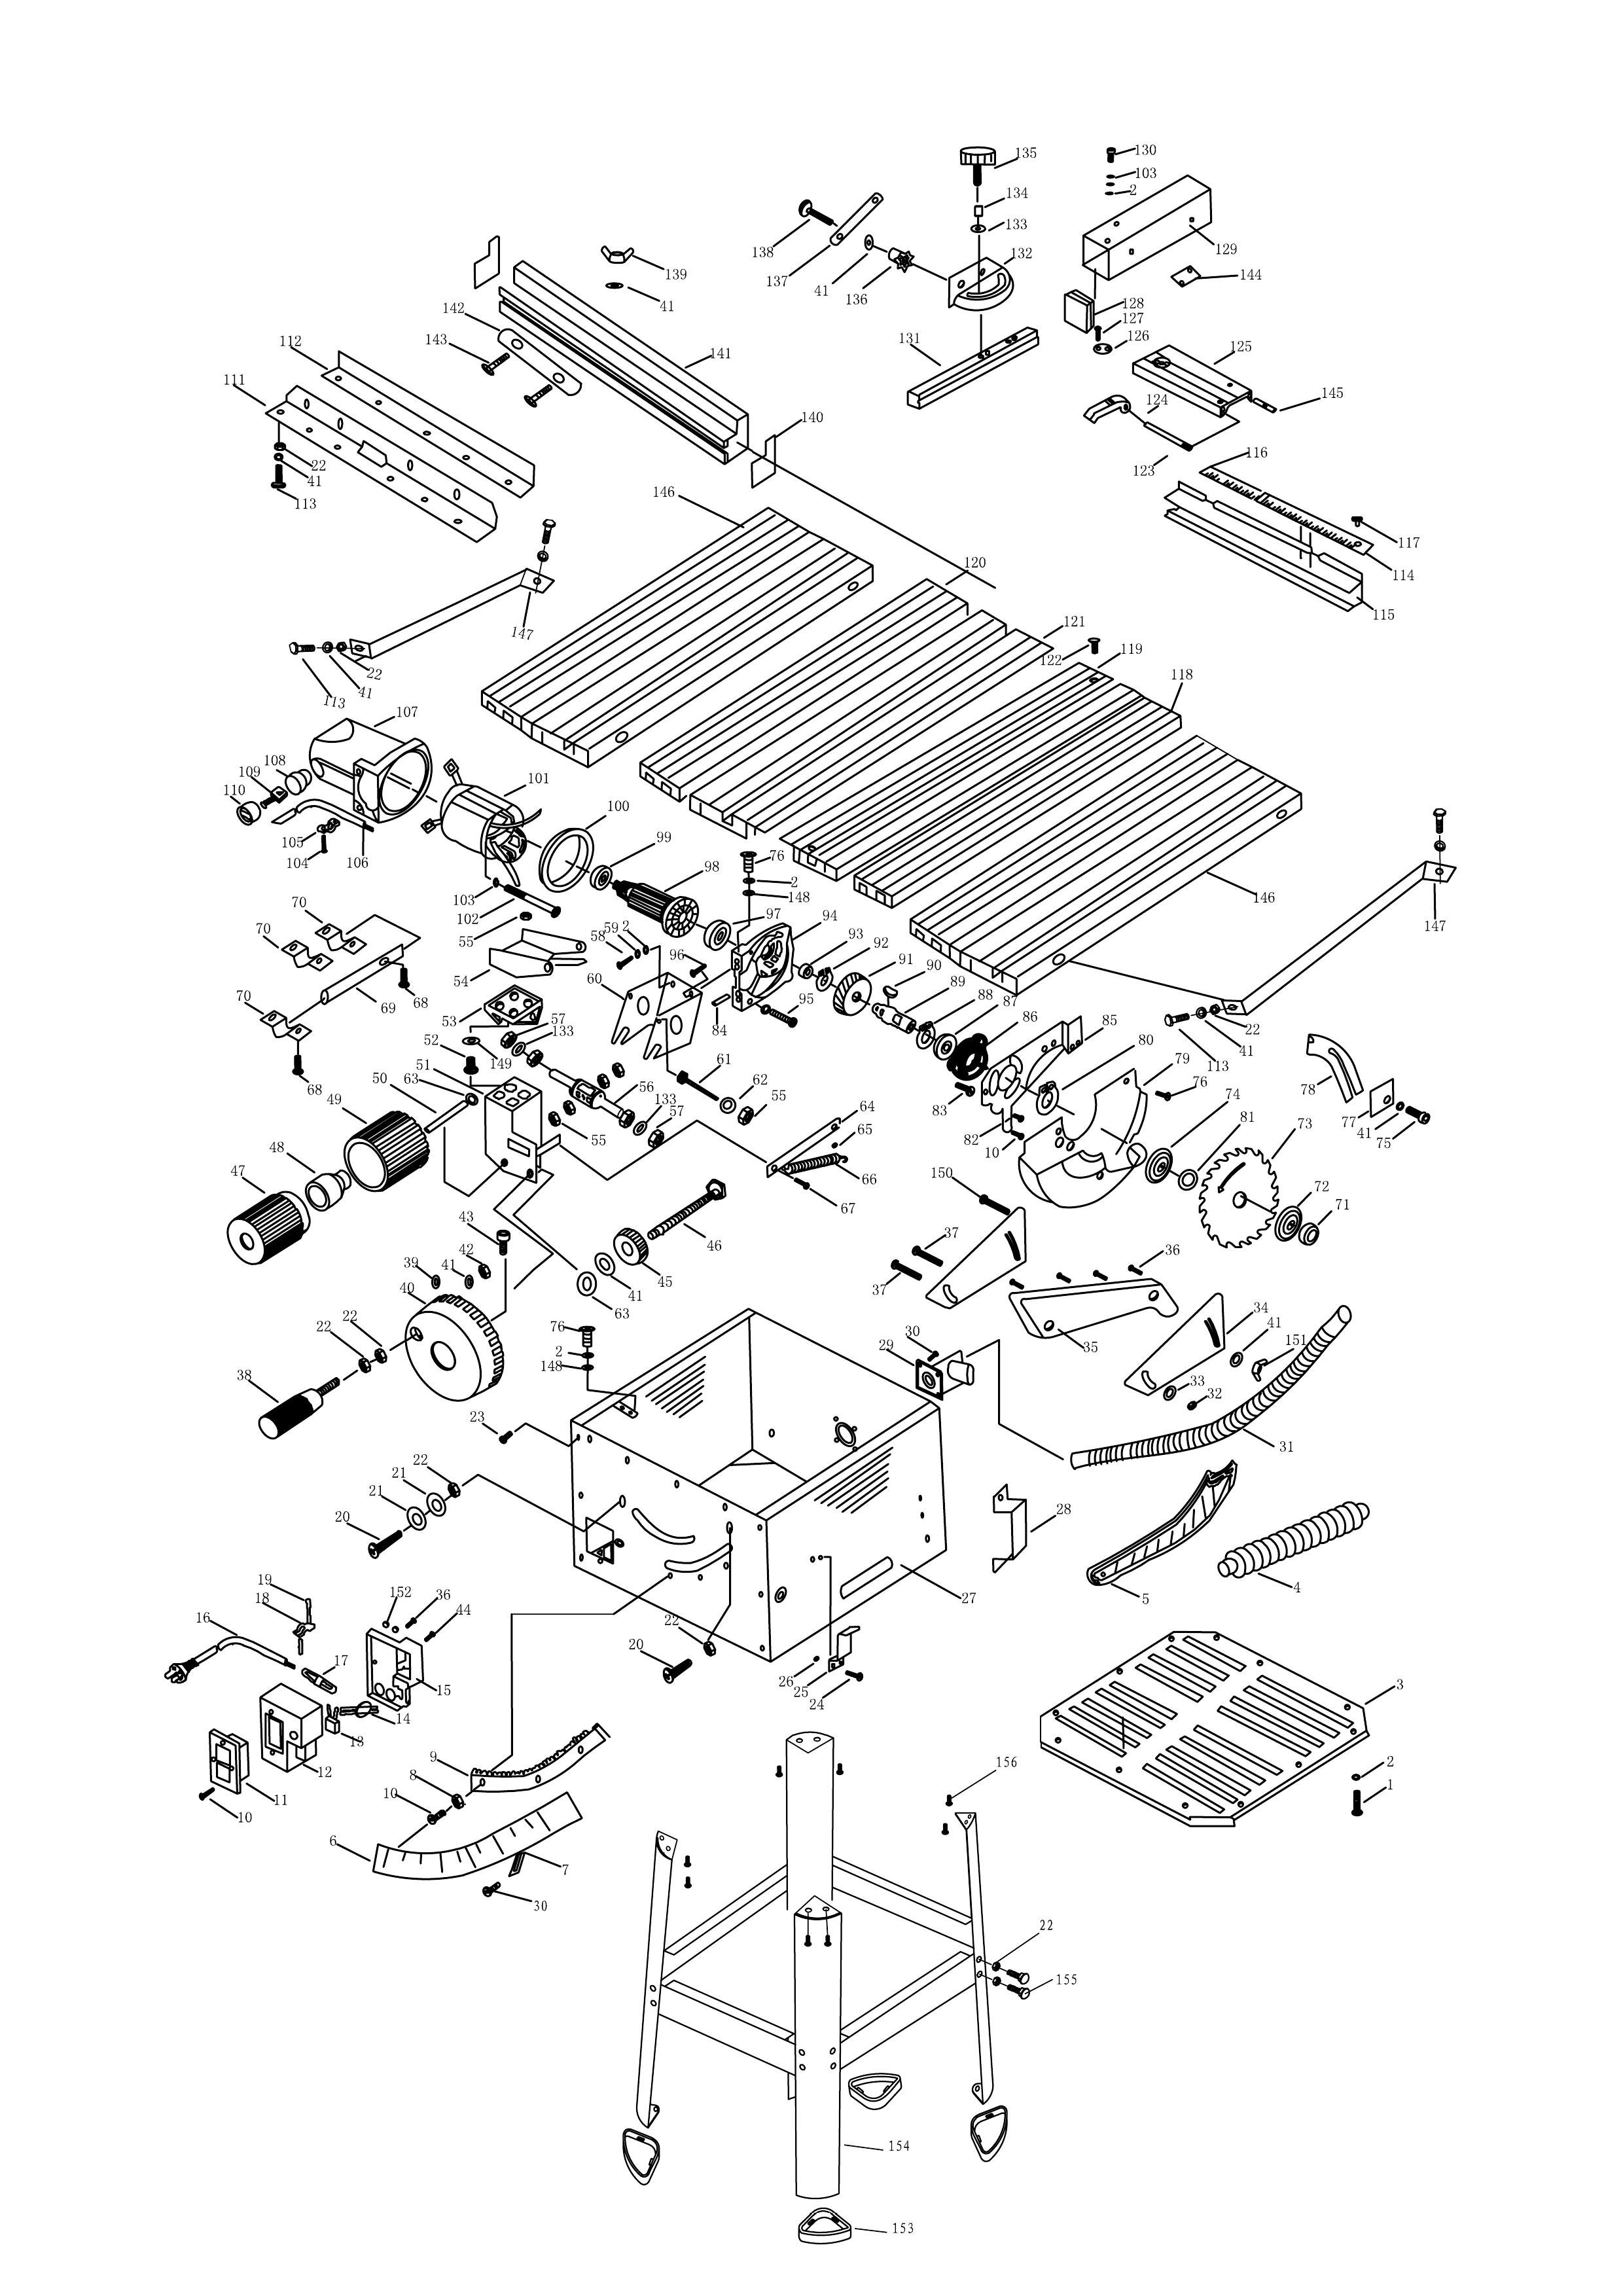 Sip 01930 10 table saw diagram ccuart Images